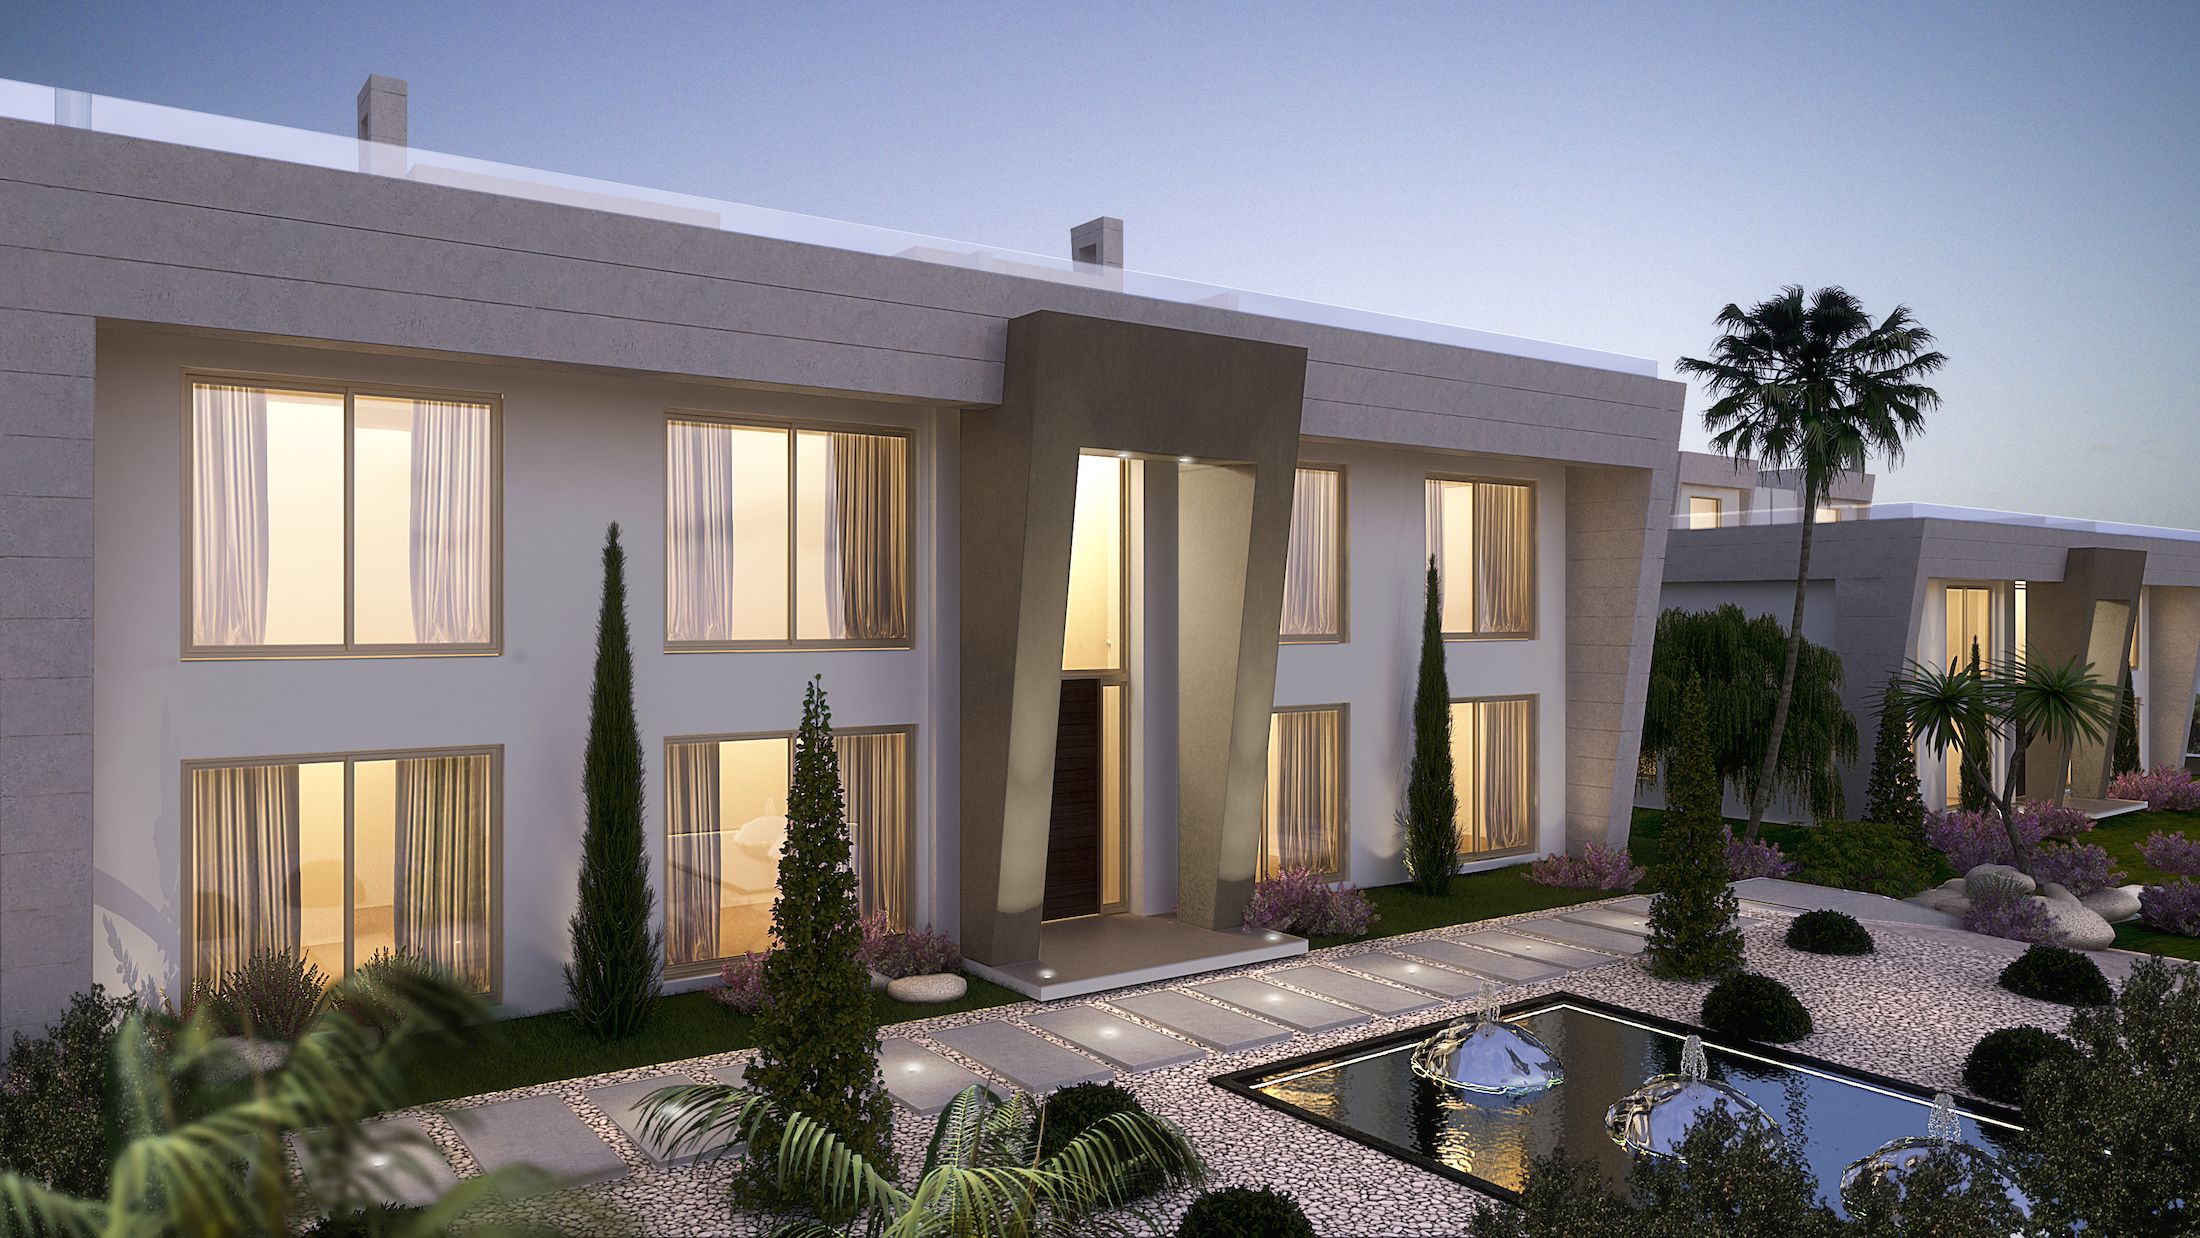 New Development Sierra Blanca, Marbella